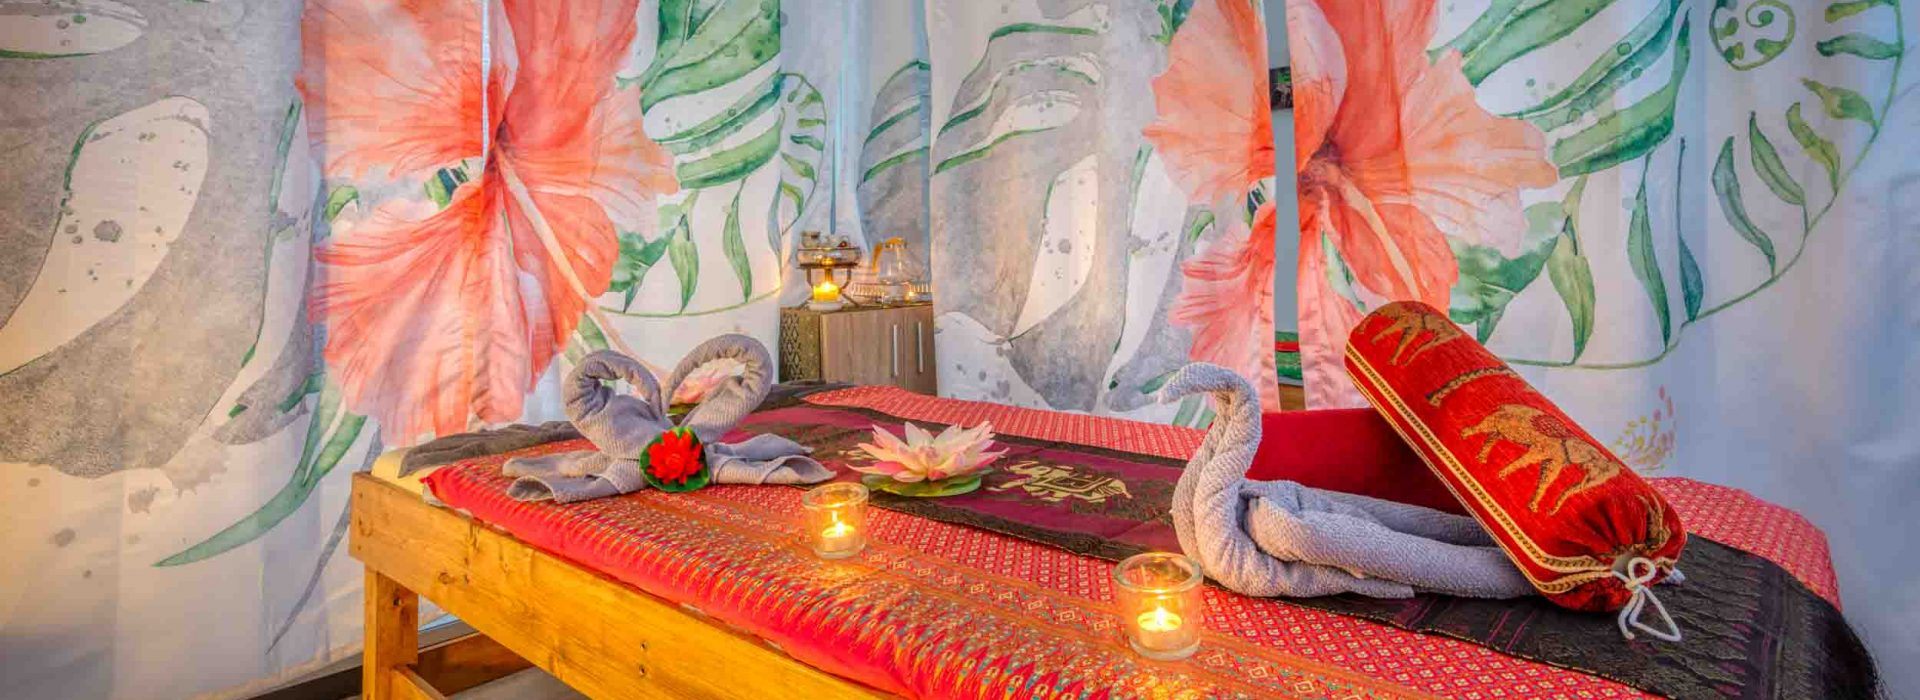 Traditionelle Thai Massage in Bad Camberg